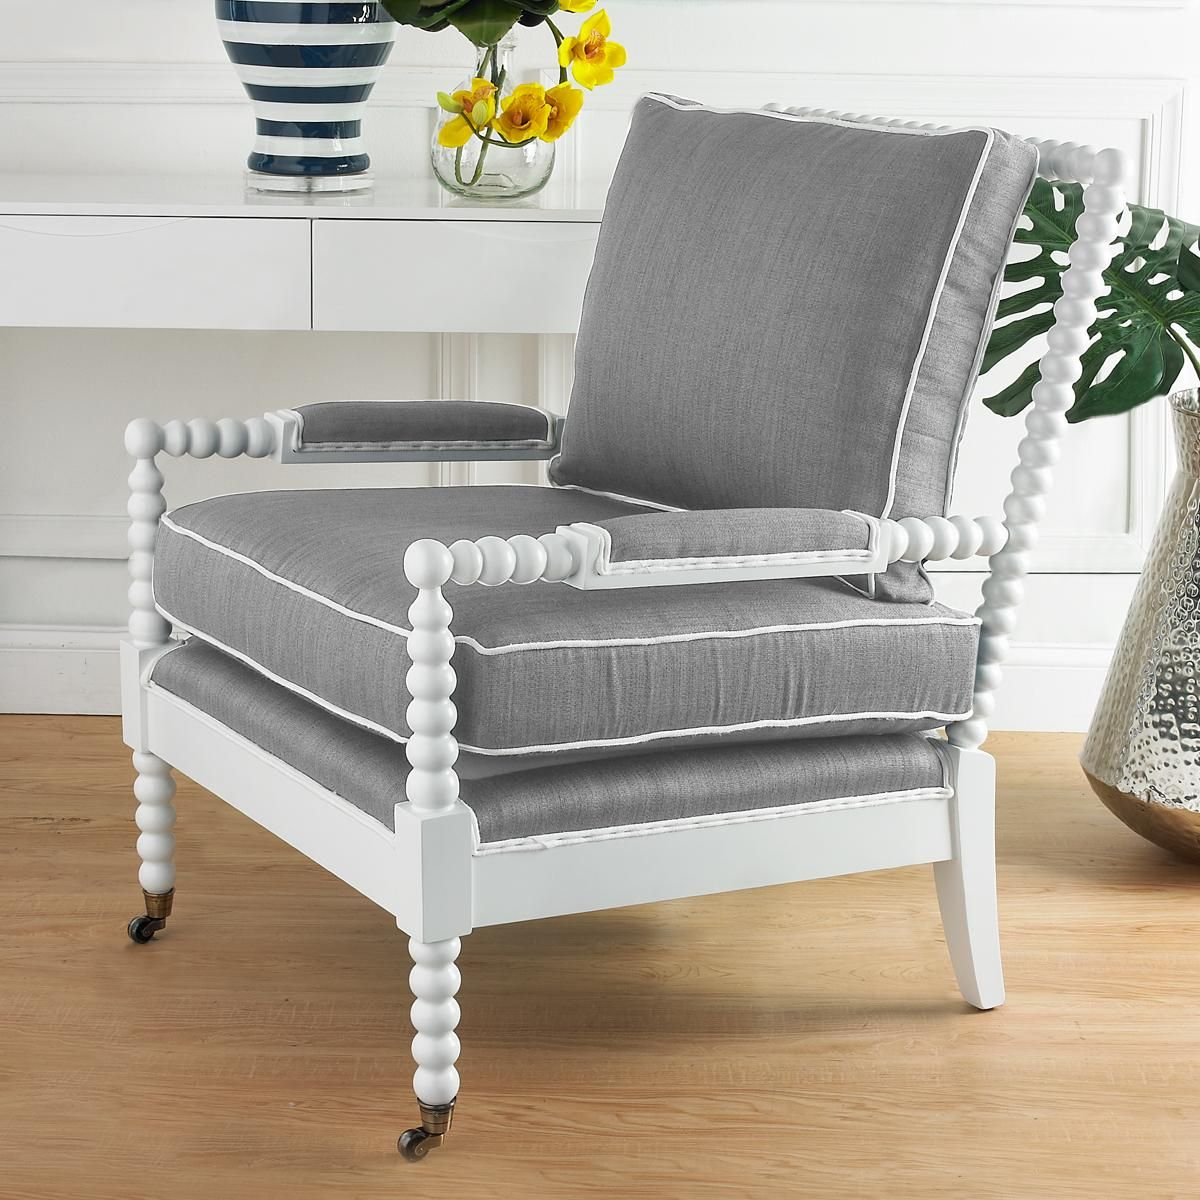 Wooden Spool Accent Chair   Pinterest   Spool chair ...